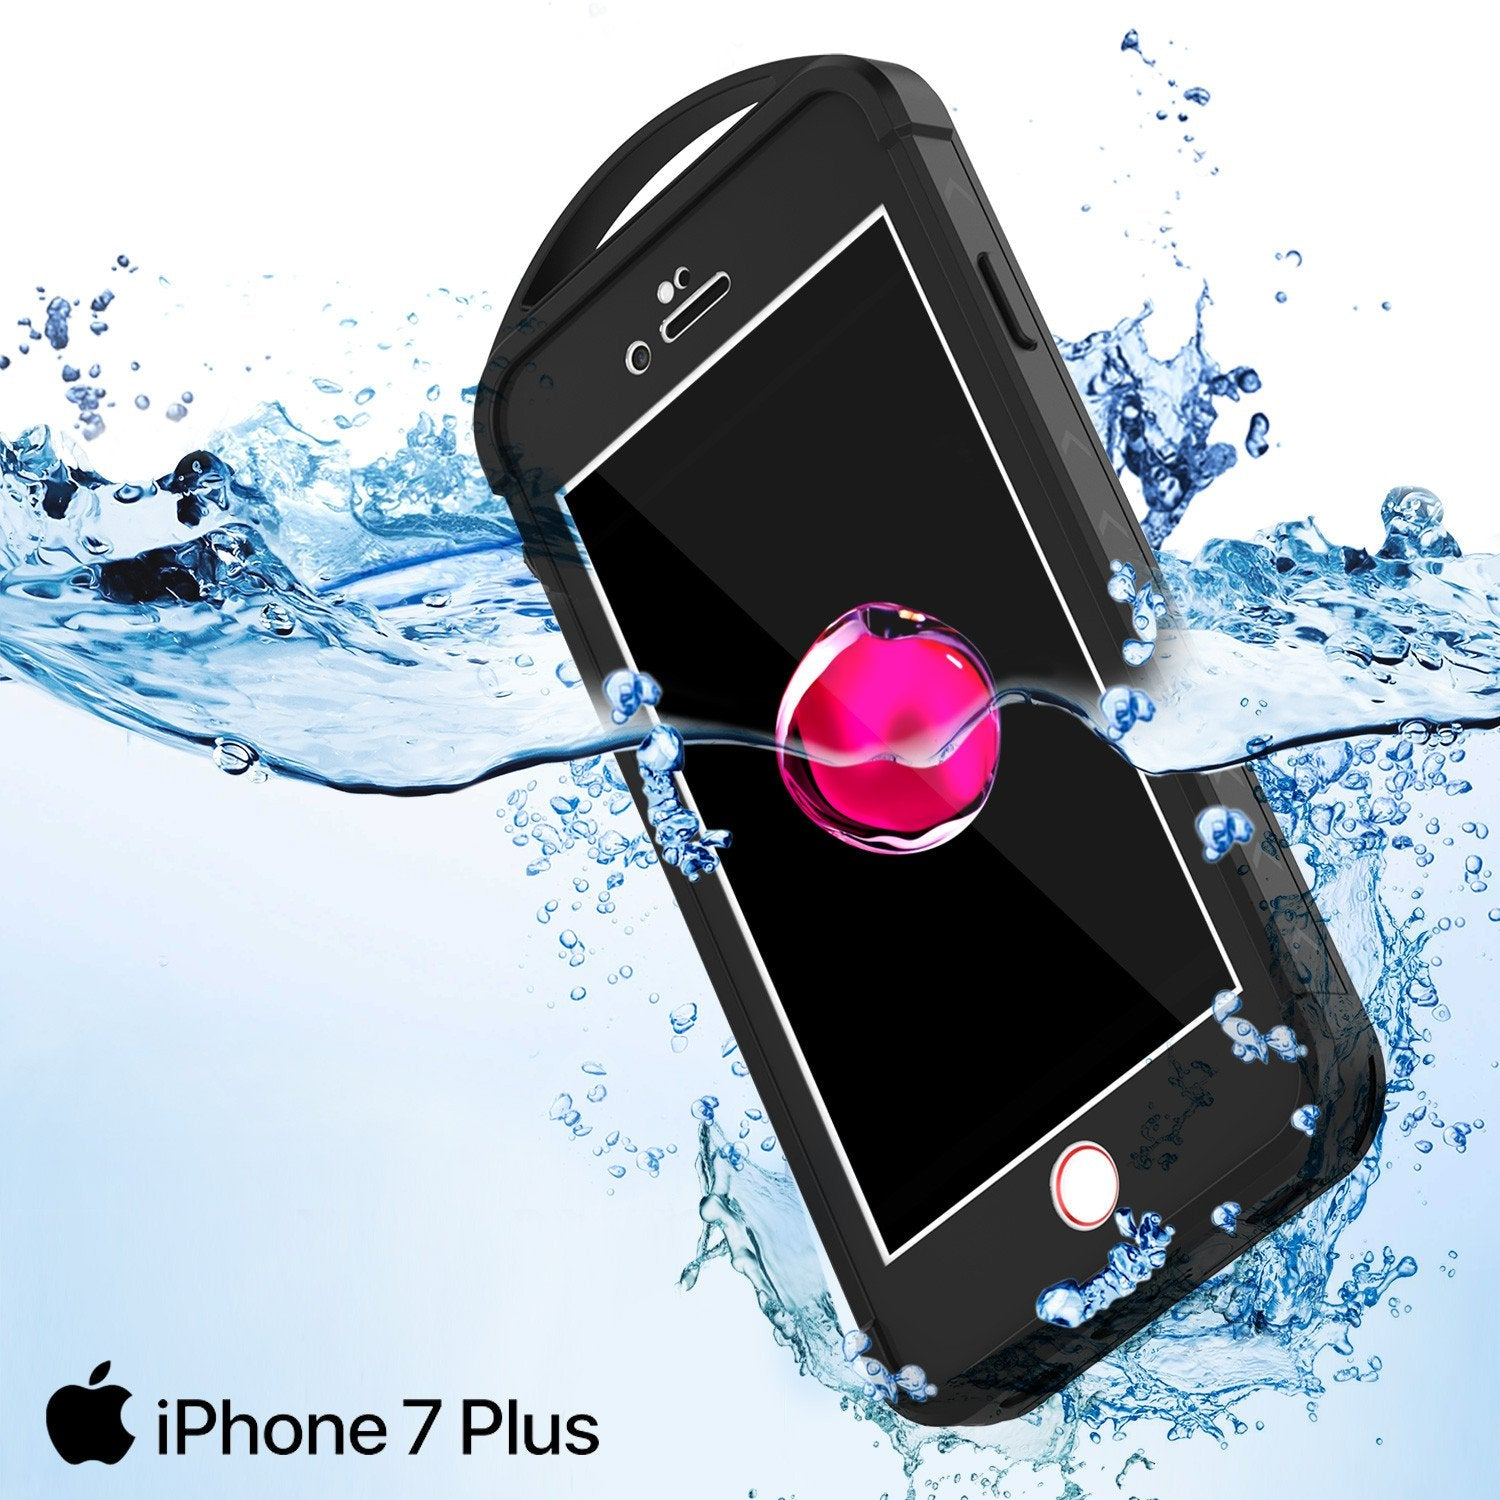 iPhone 7+ Plus Waterproof Case, Punkcase ALPINE Series, Black | Heavy Duty Armor Cover